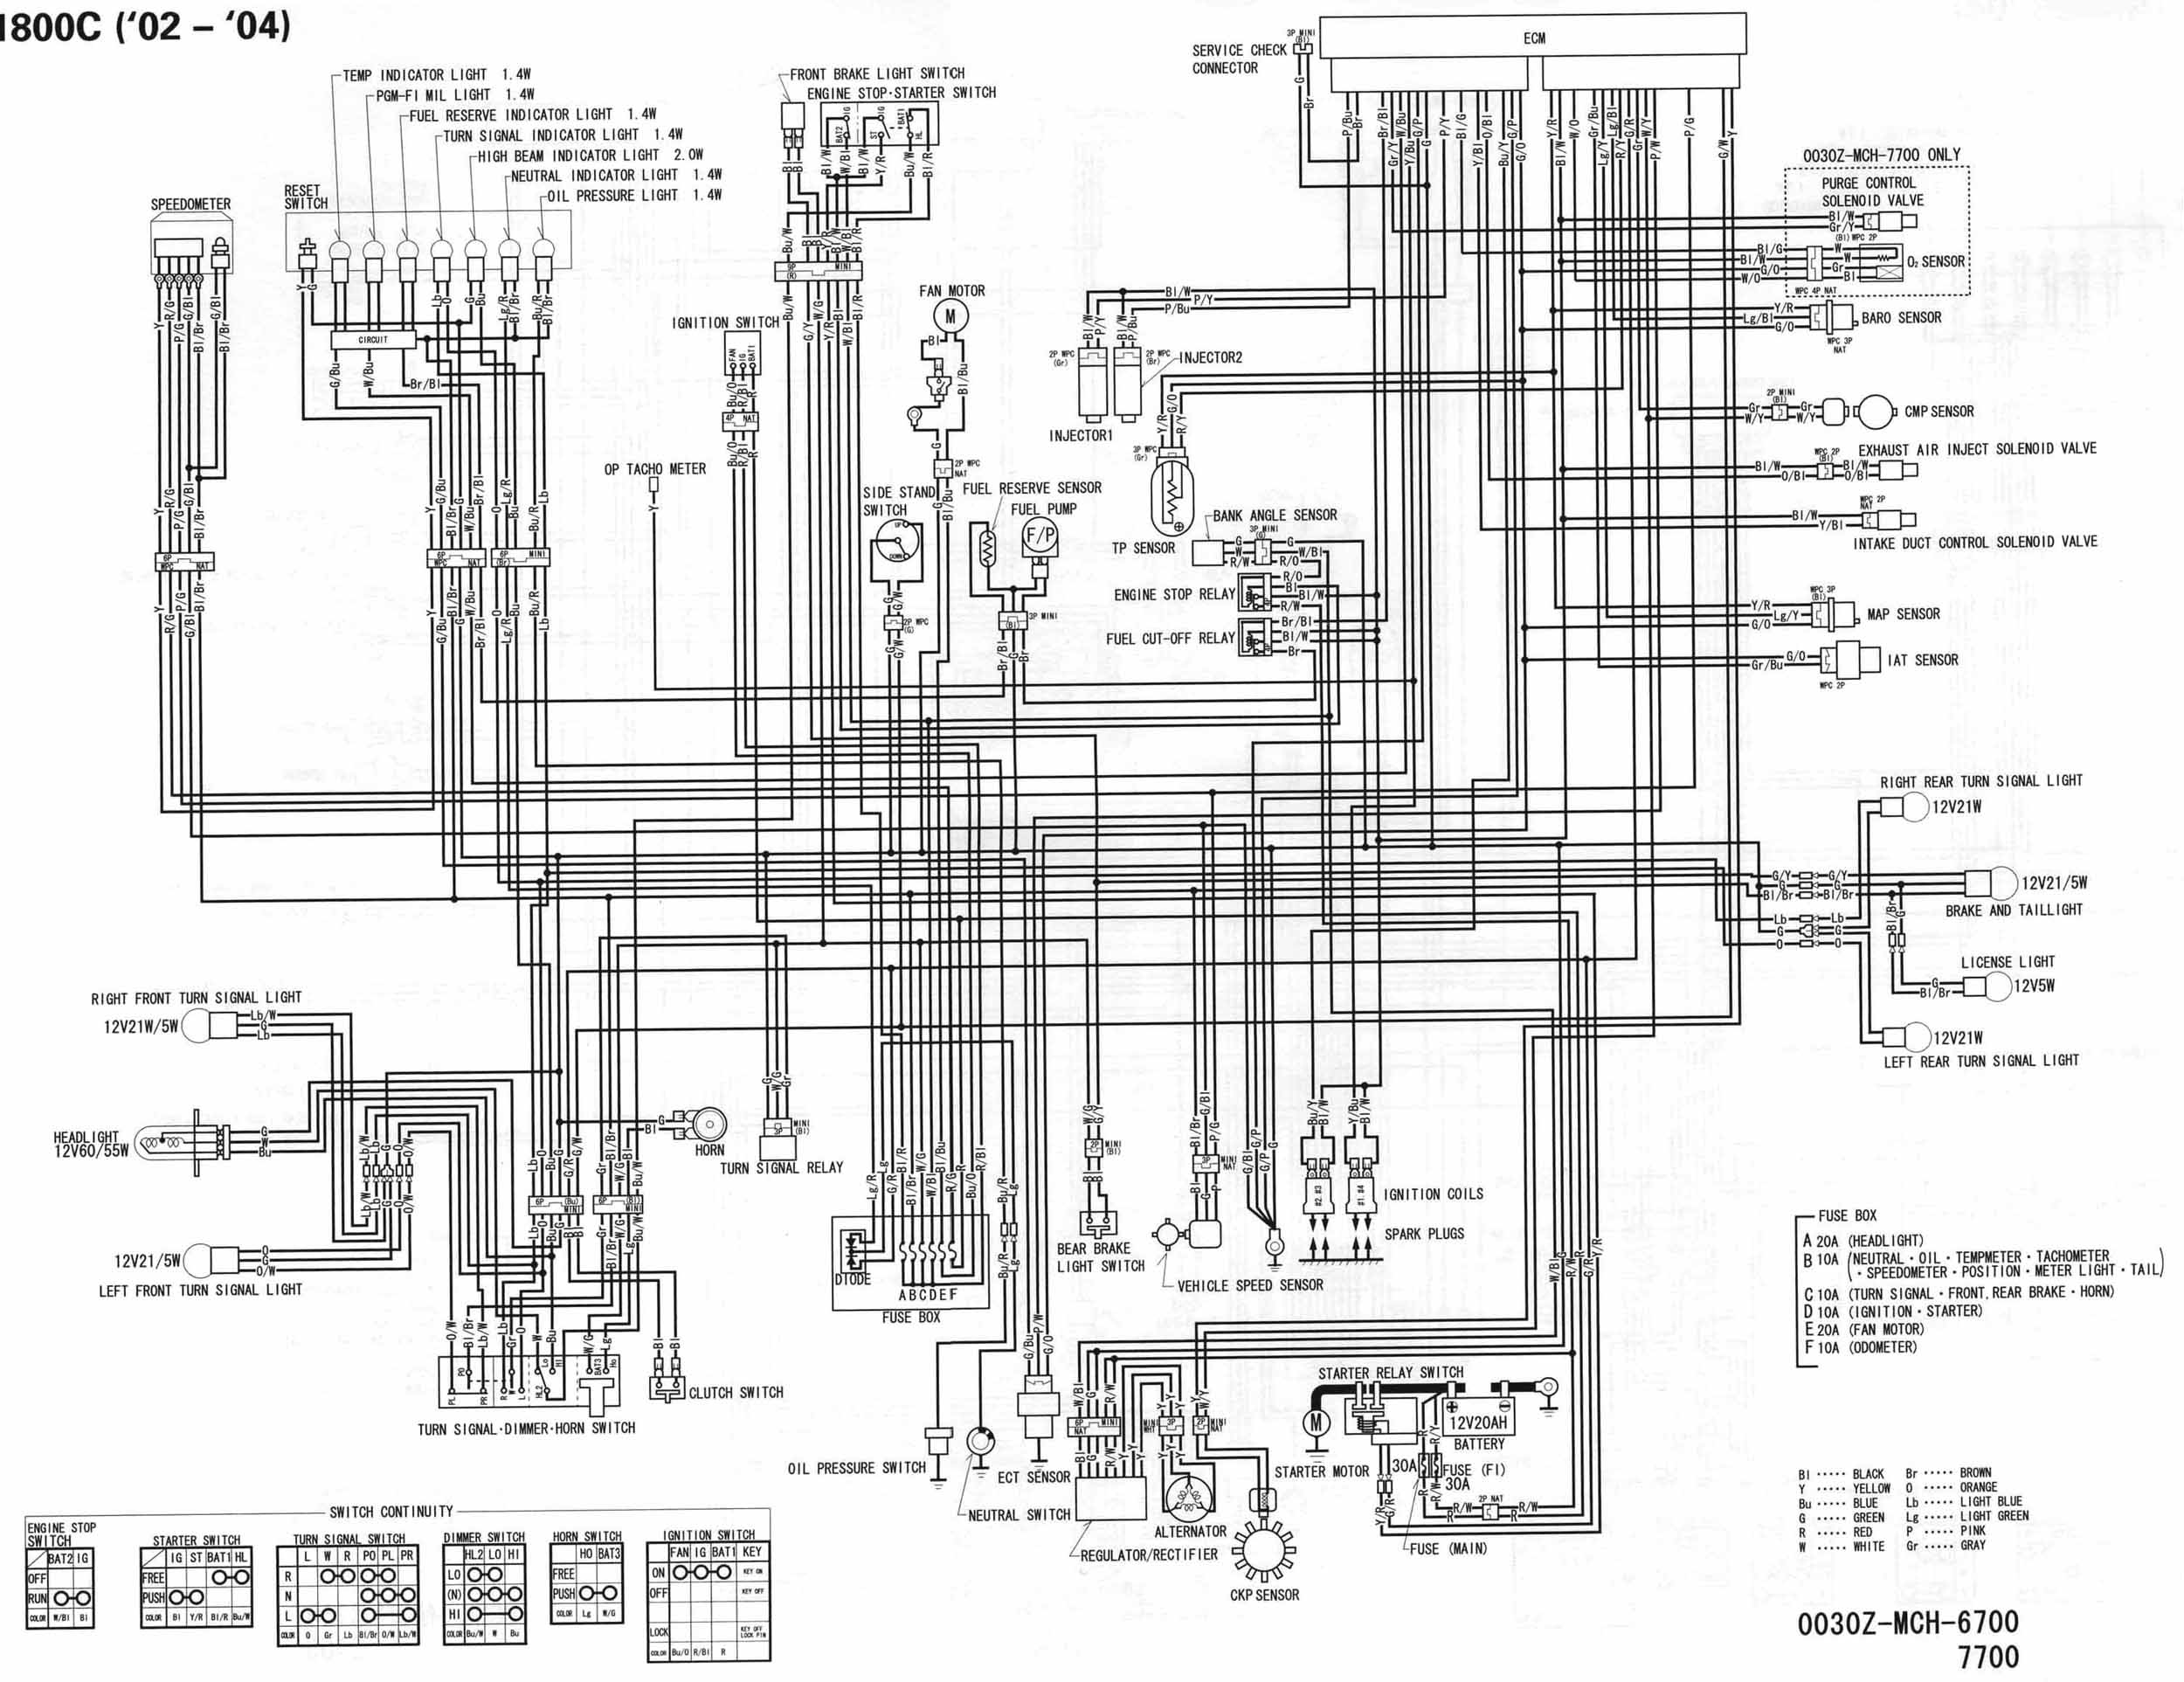 motorcycle wire schematics bareass choppers motorcycle tech pages ft 500  wiring diagram 02 04 vtx 1800c